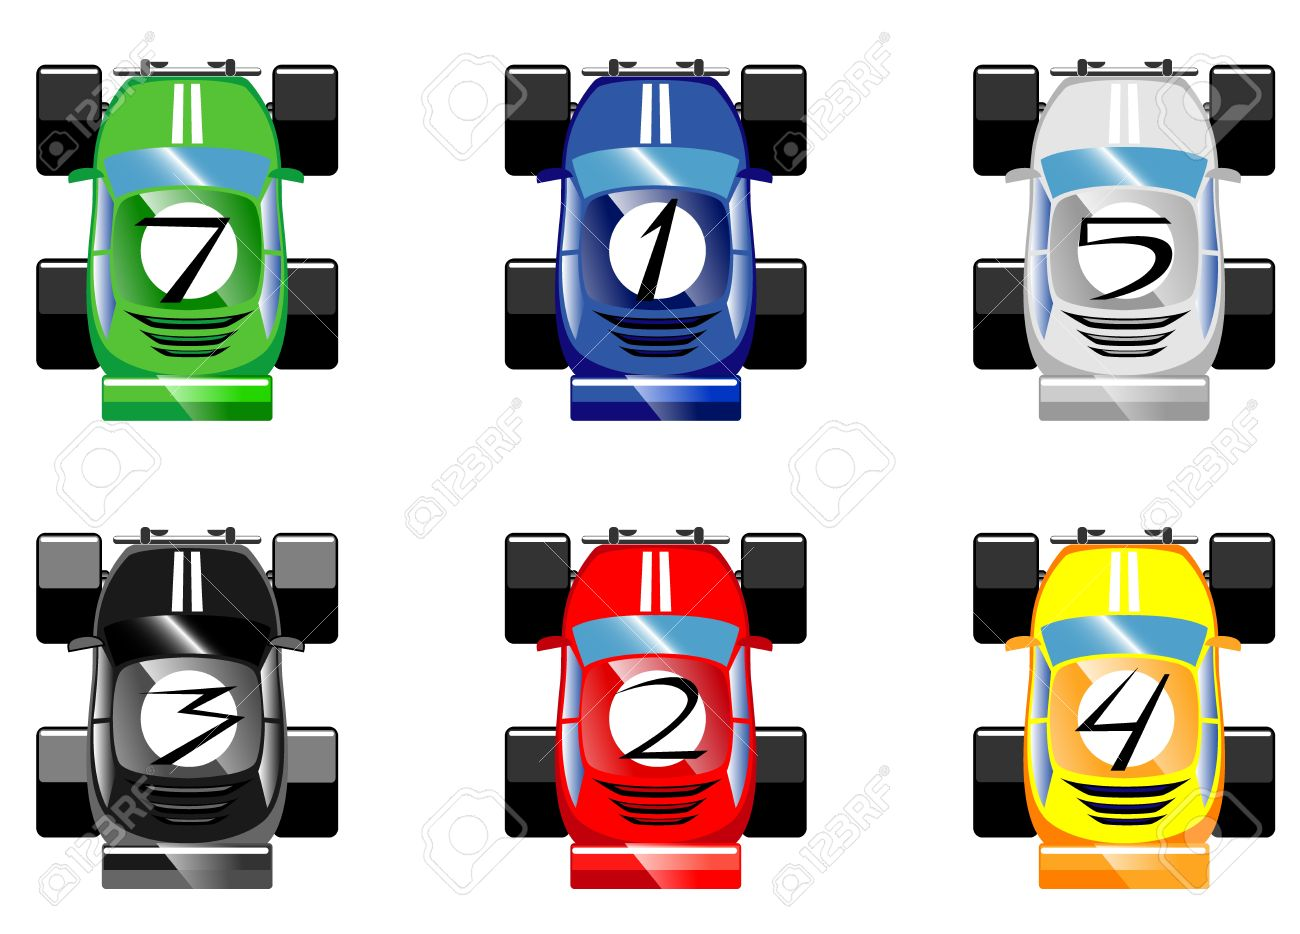 Race Game Cliparts Stock Vector And Royalty Free Race Game